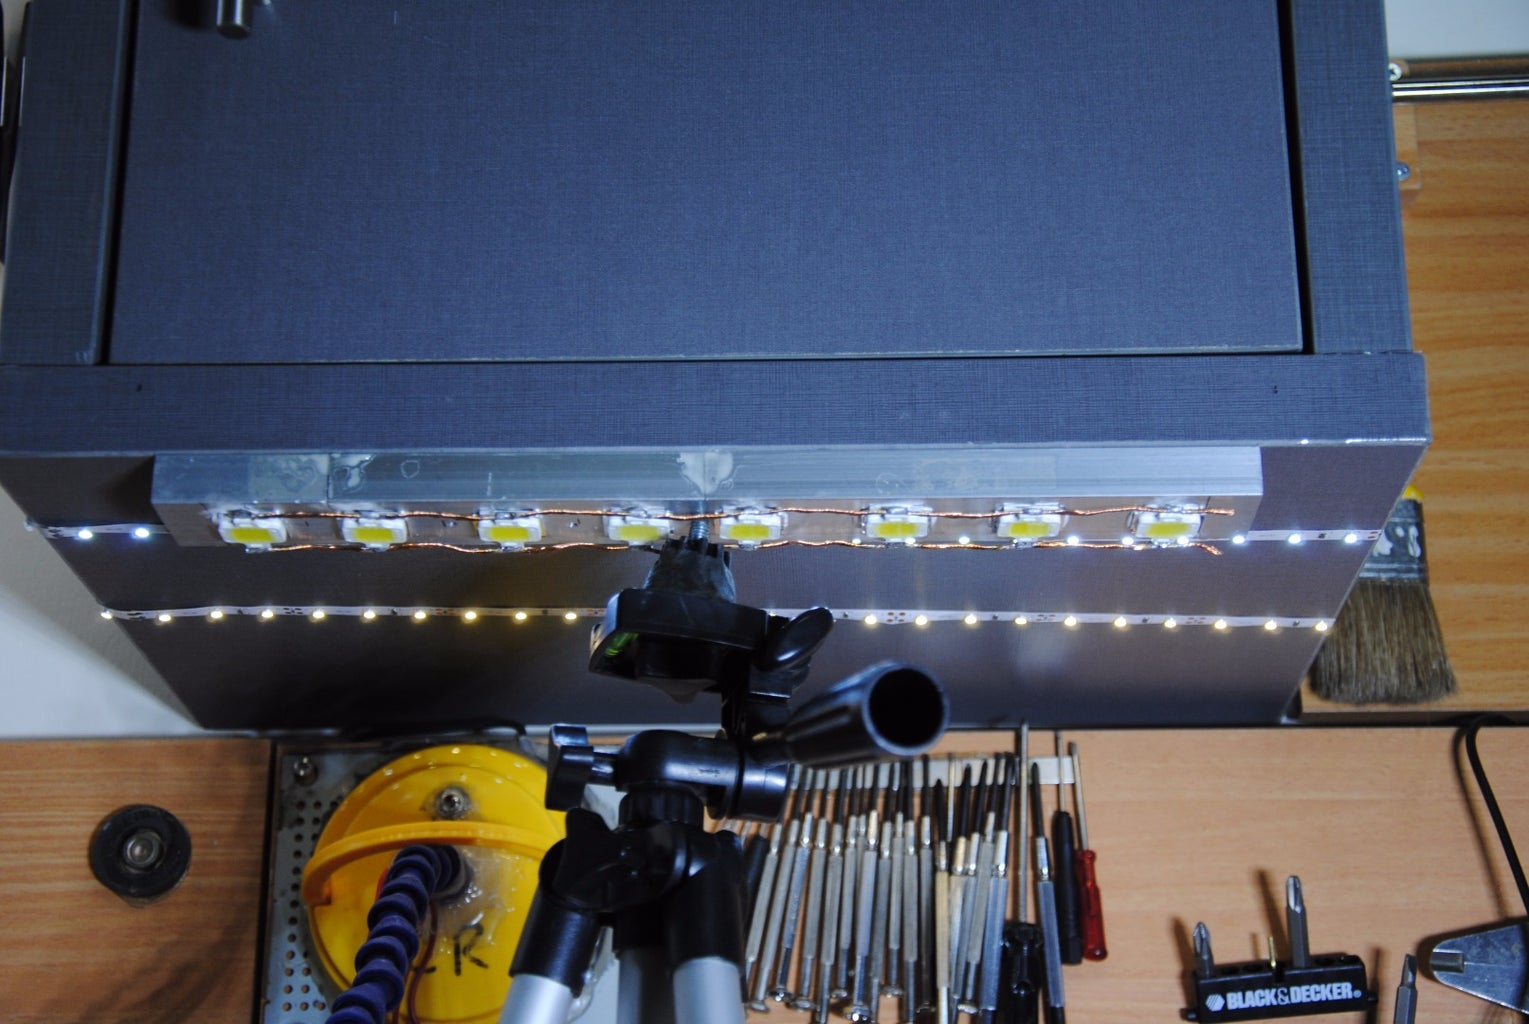 Attaching the Heat-Sinks to My Over-Table Cabinet